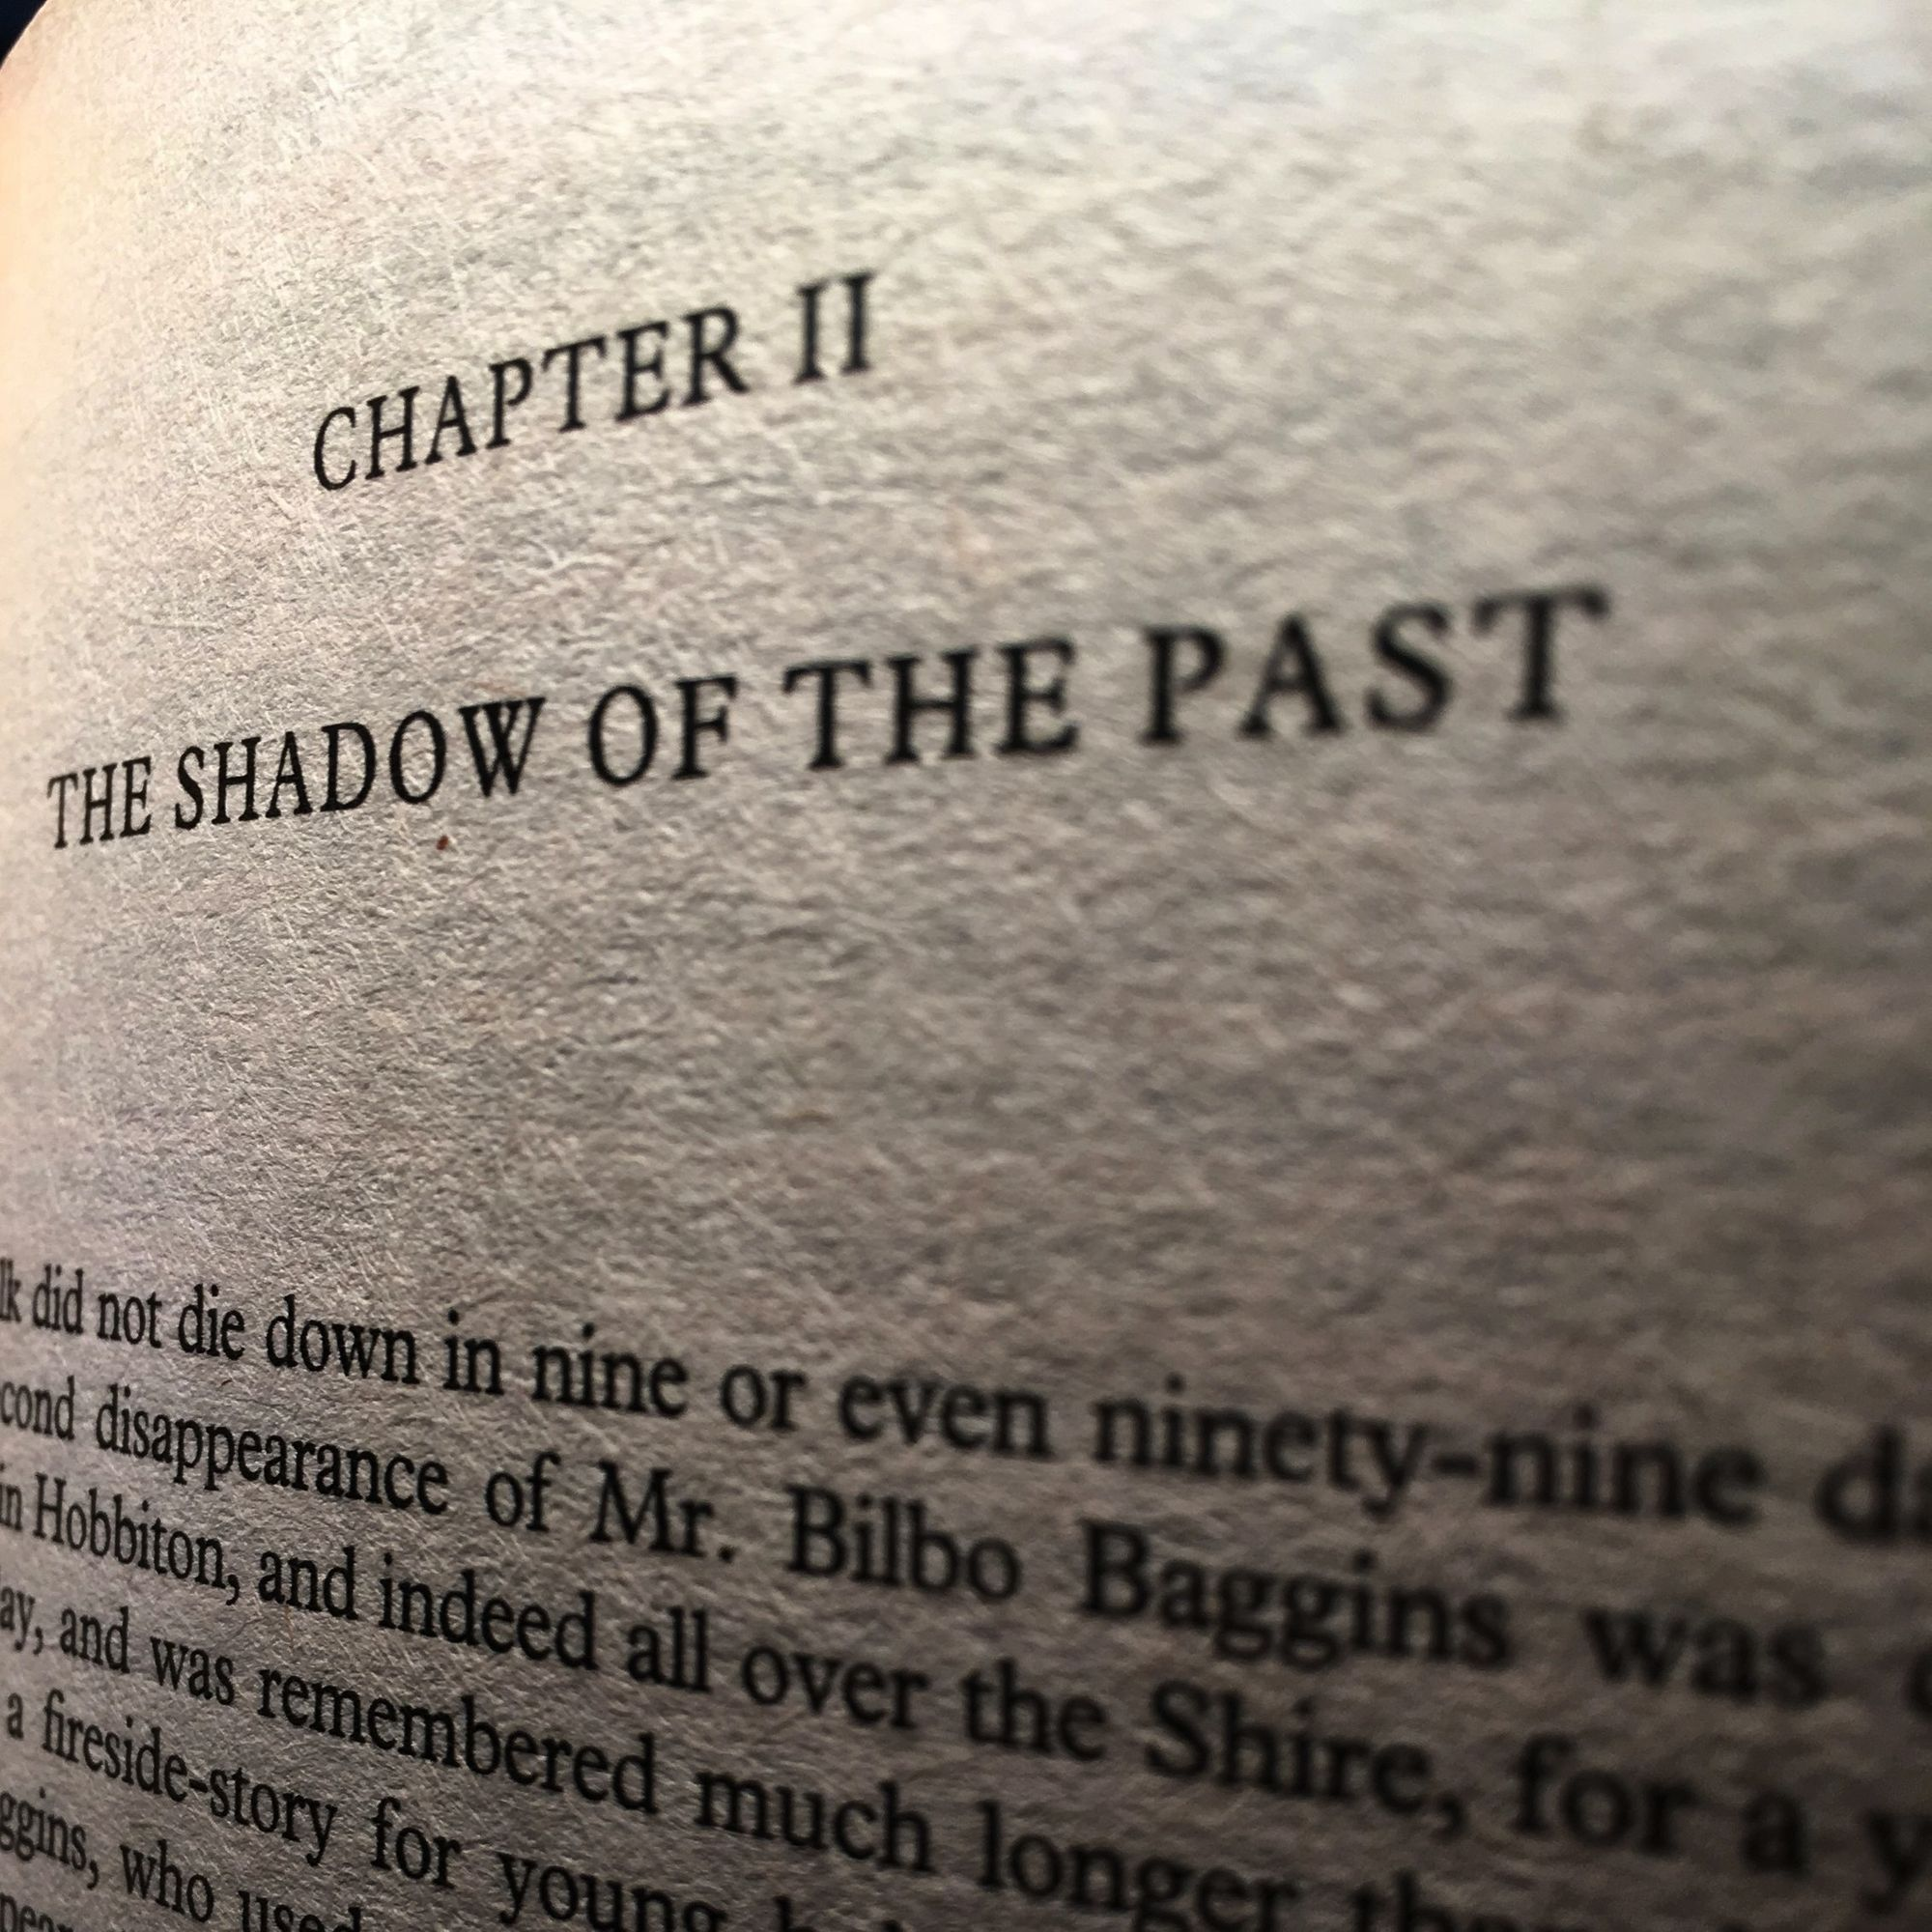 The Fellowship of The Ring: The Shadow of the Past